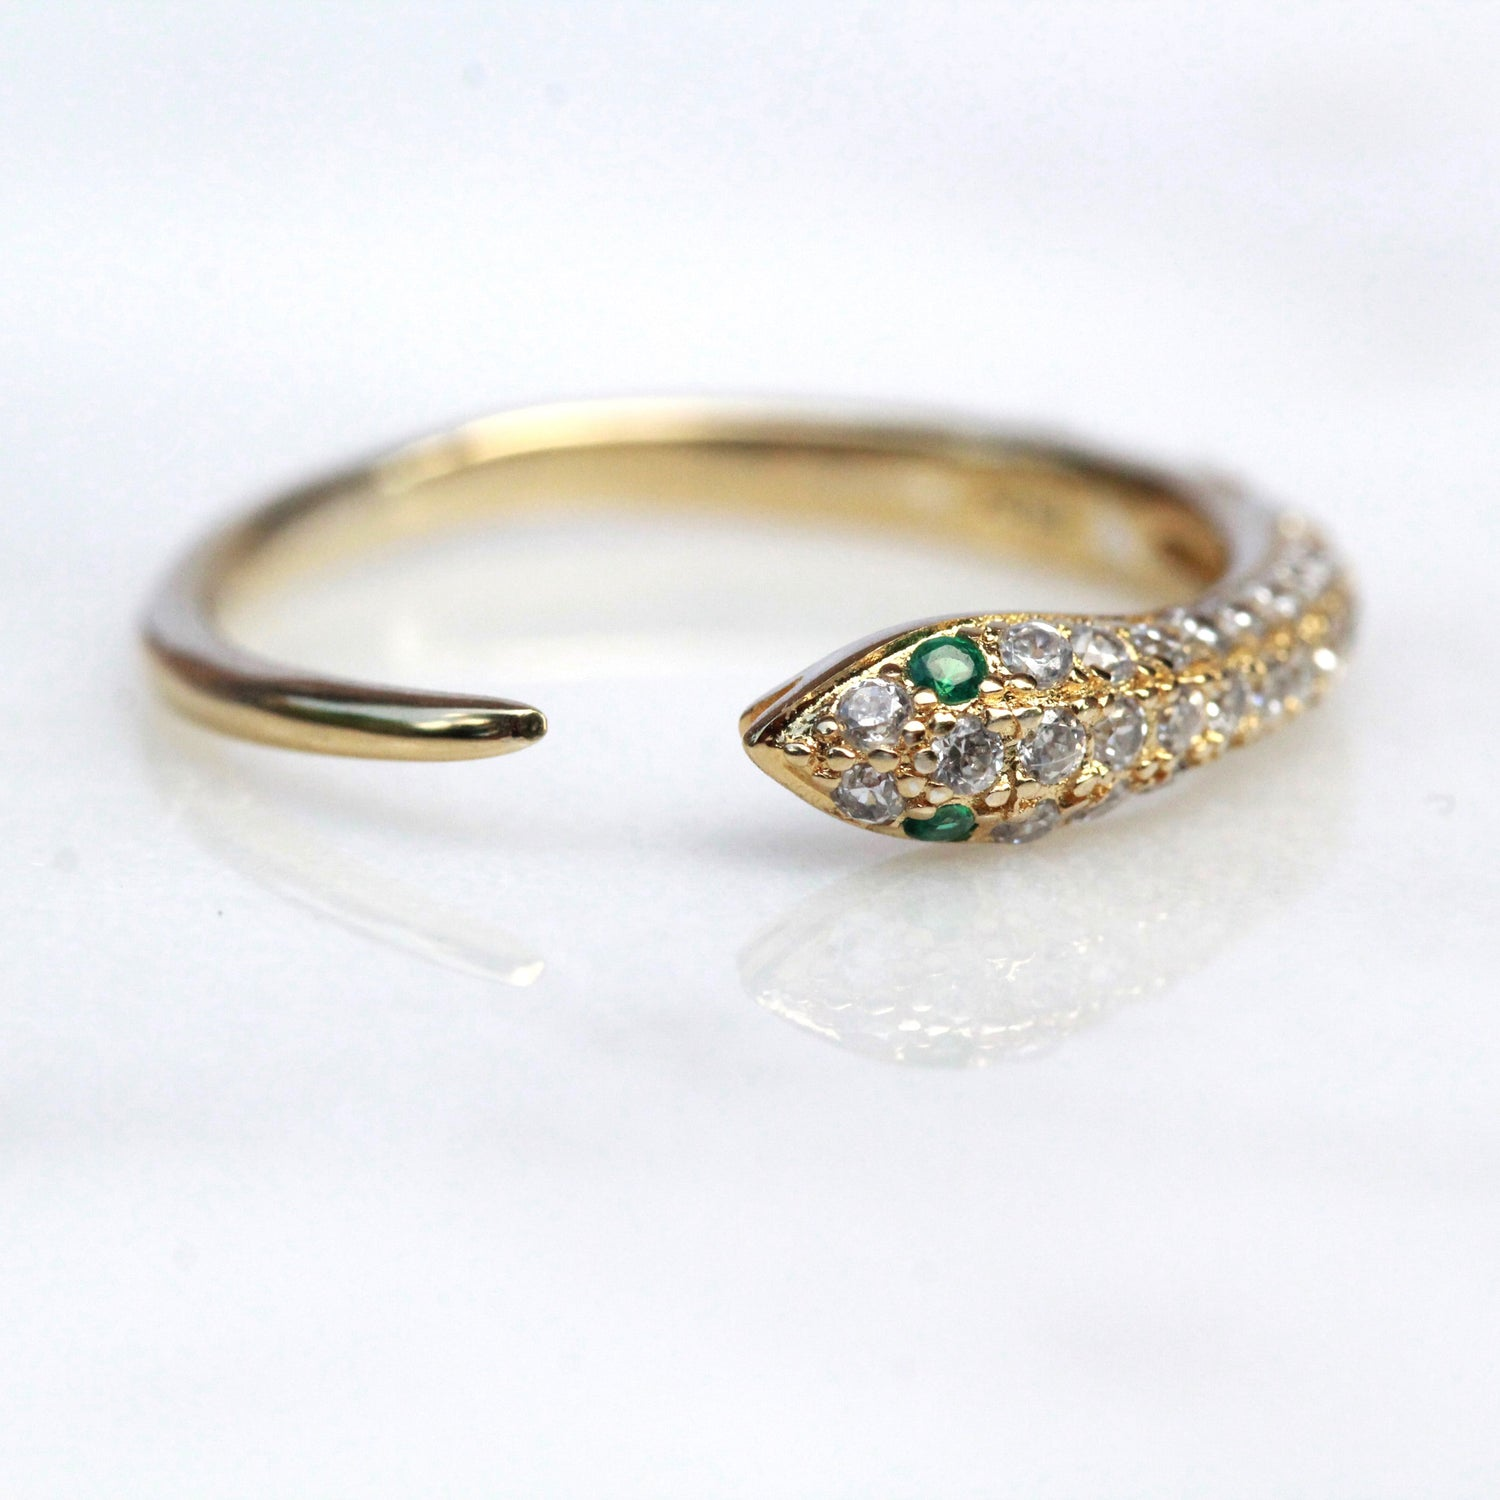 Emerald Eye Snake Ring